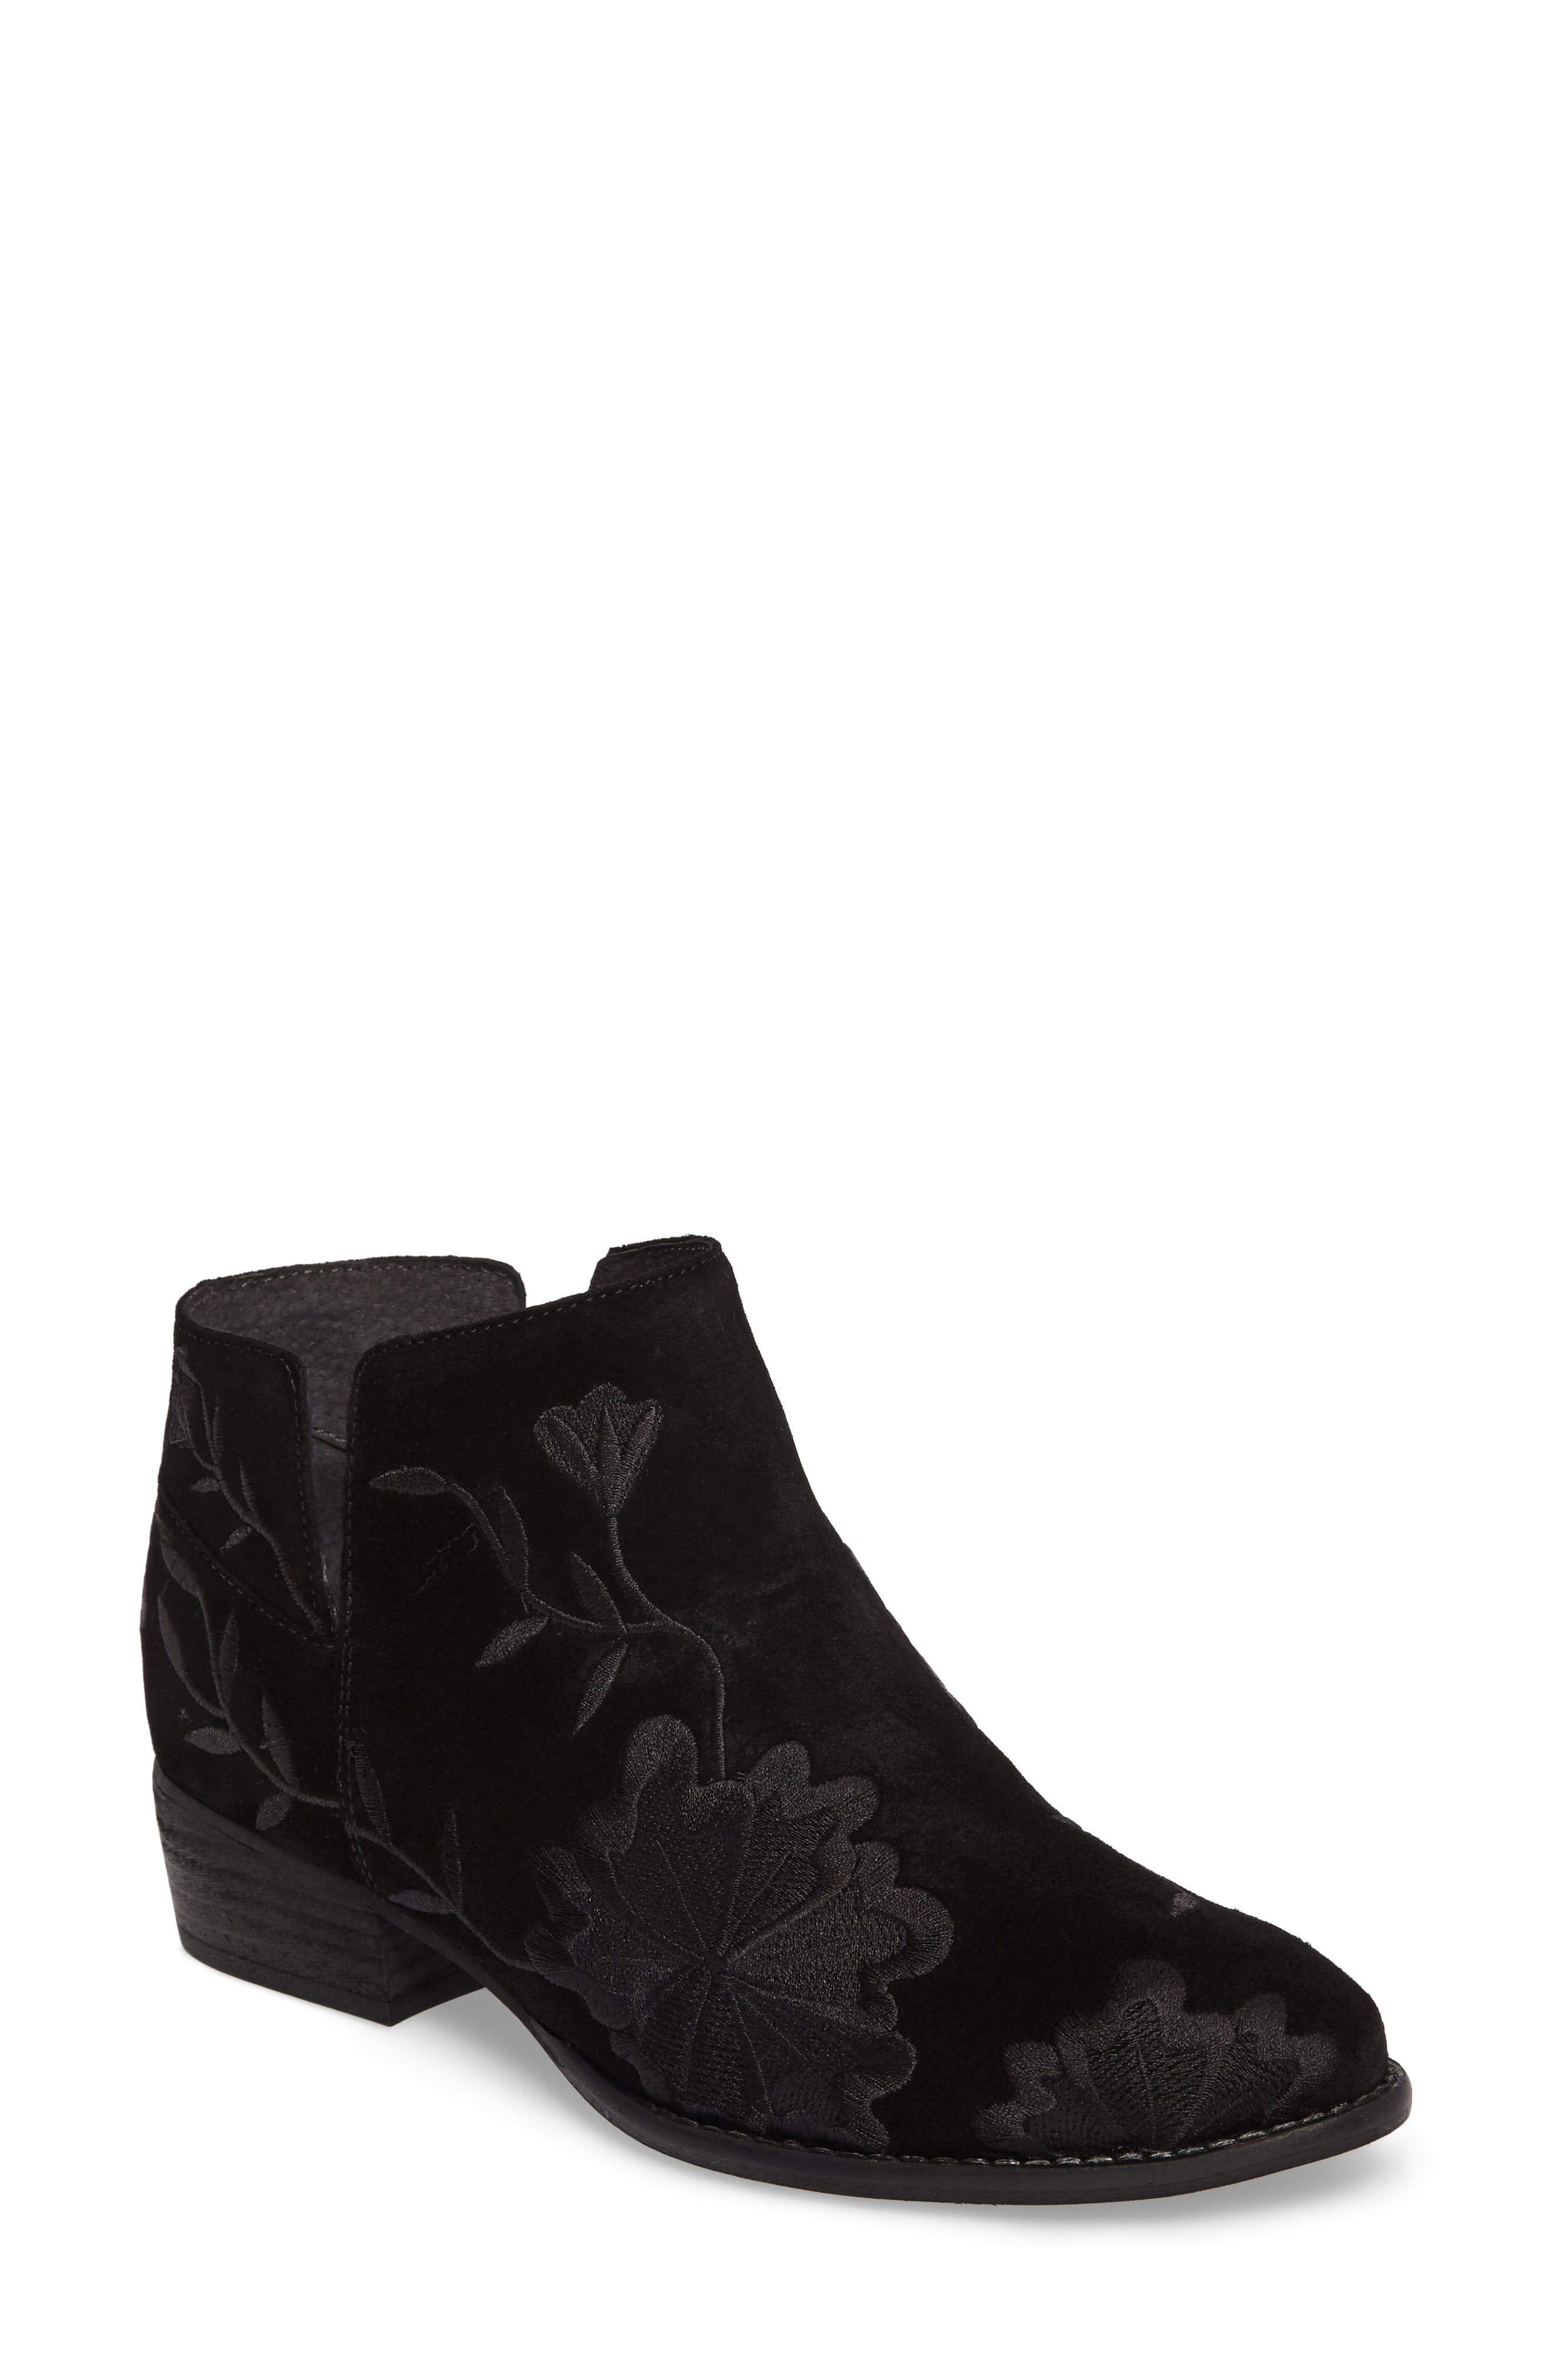 Seychelles Lantern Embroidered Short Bootie (Women)